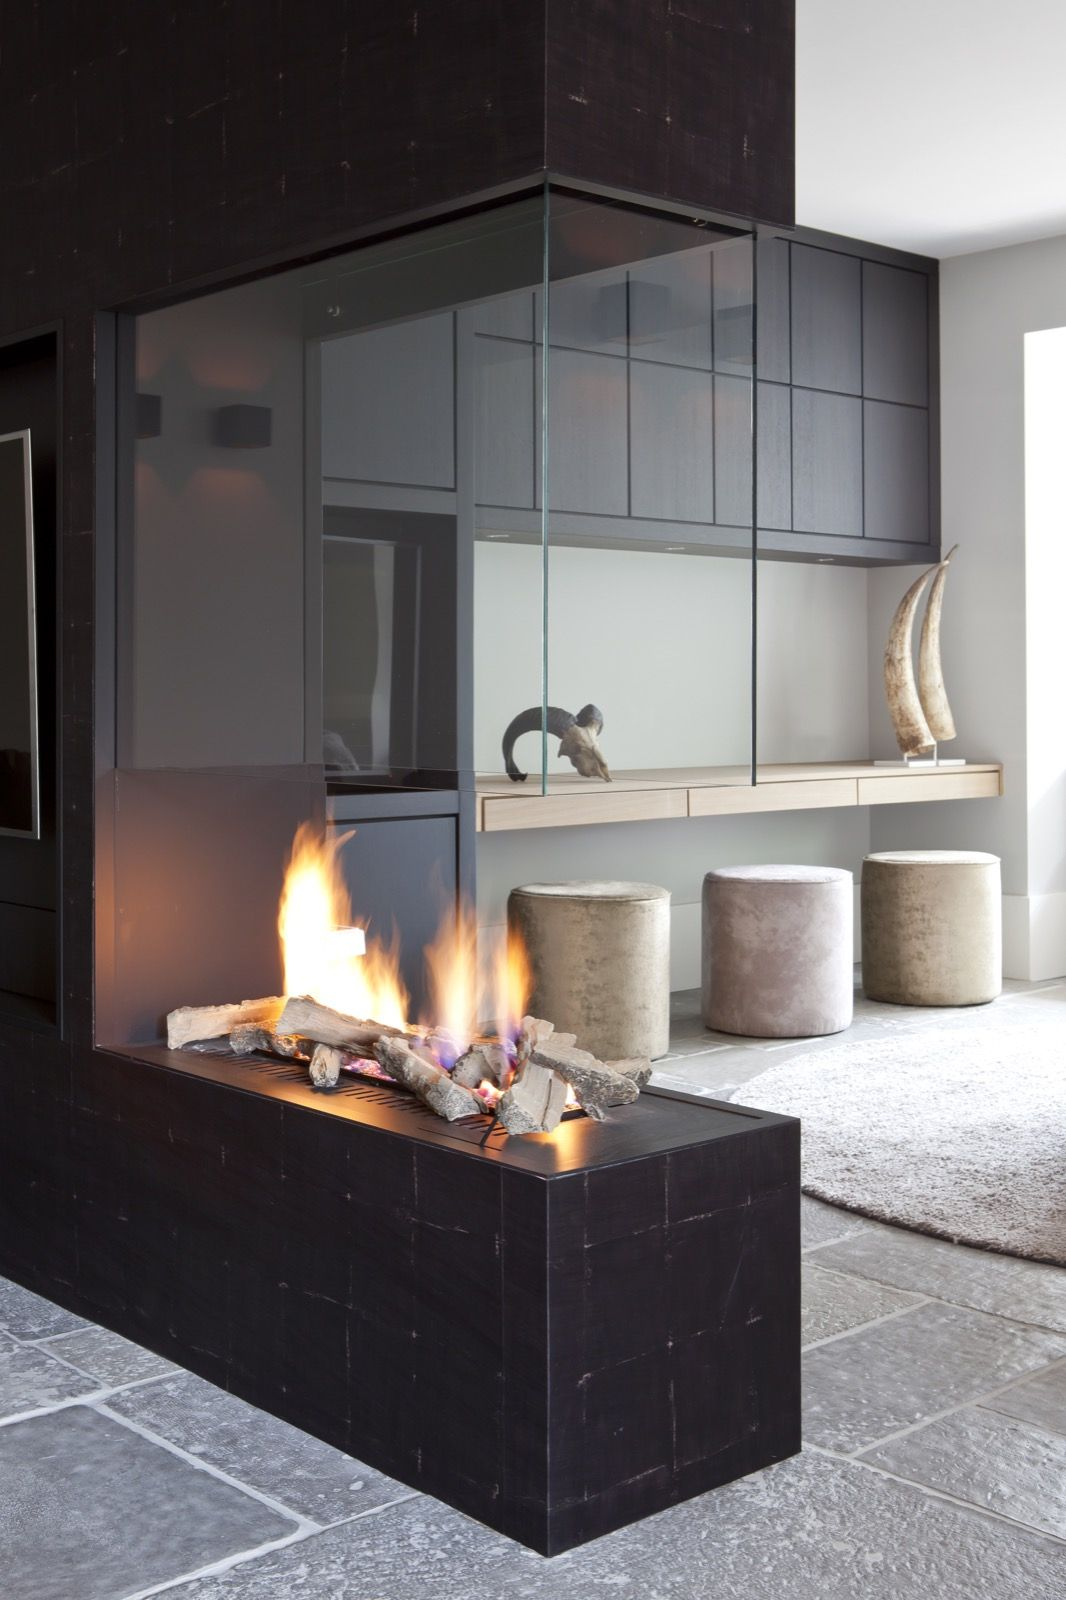 Extravagant fireplace steals the show stone fireplace for the spacious - Fireplace Design